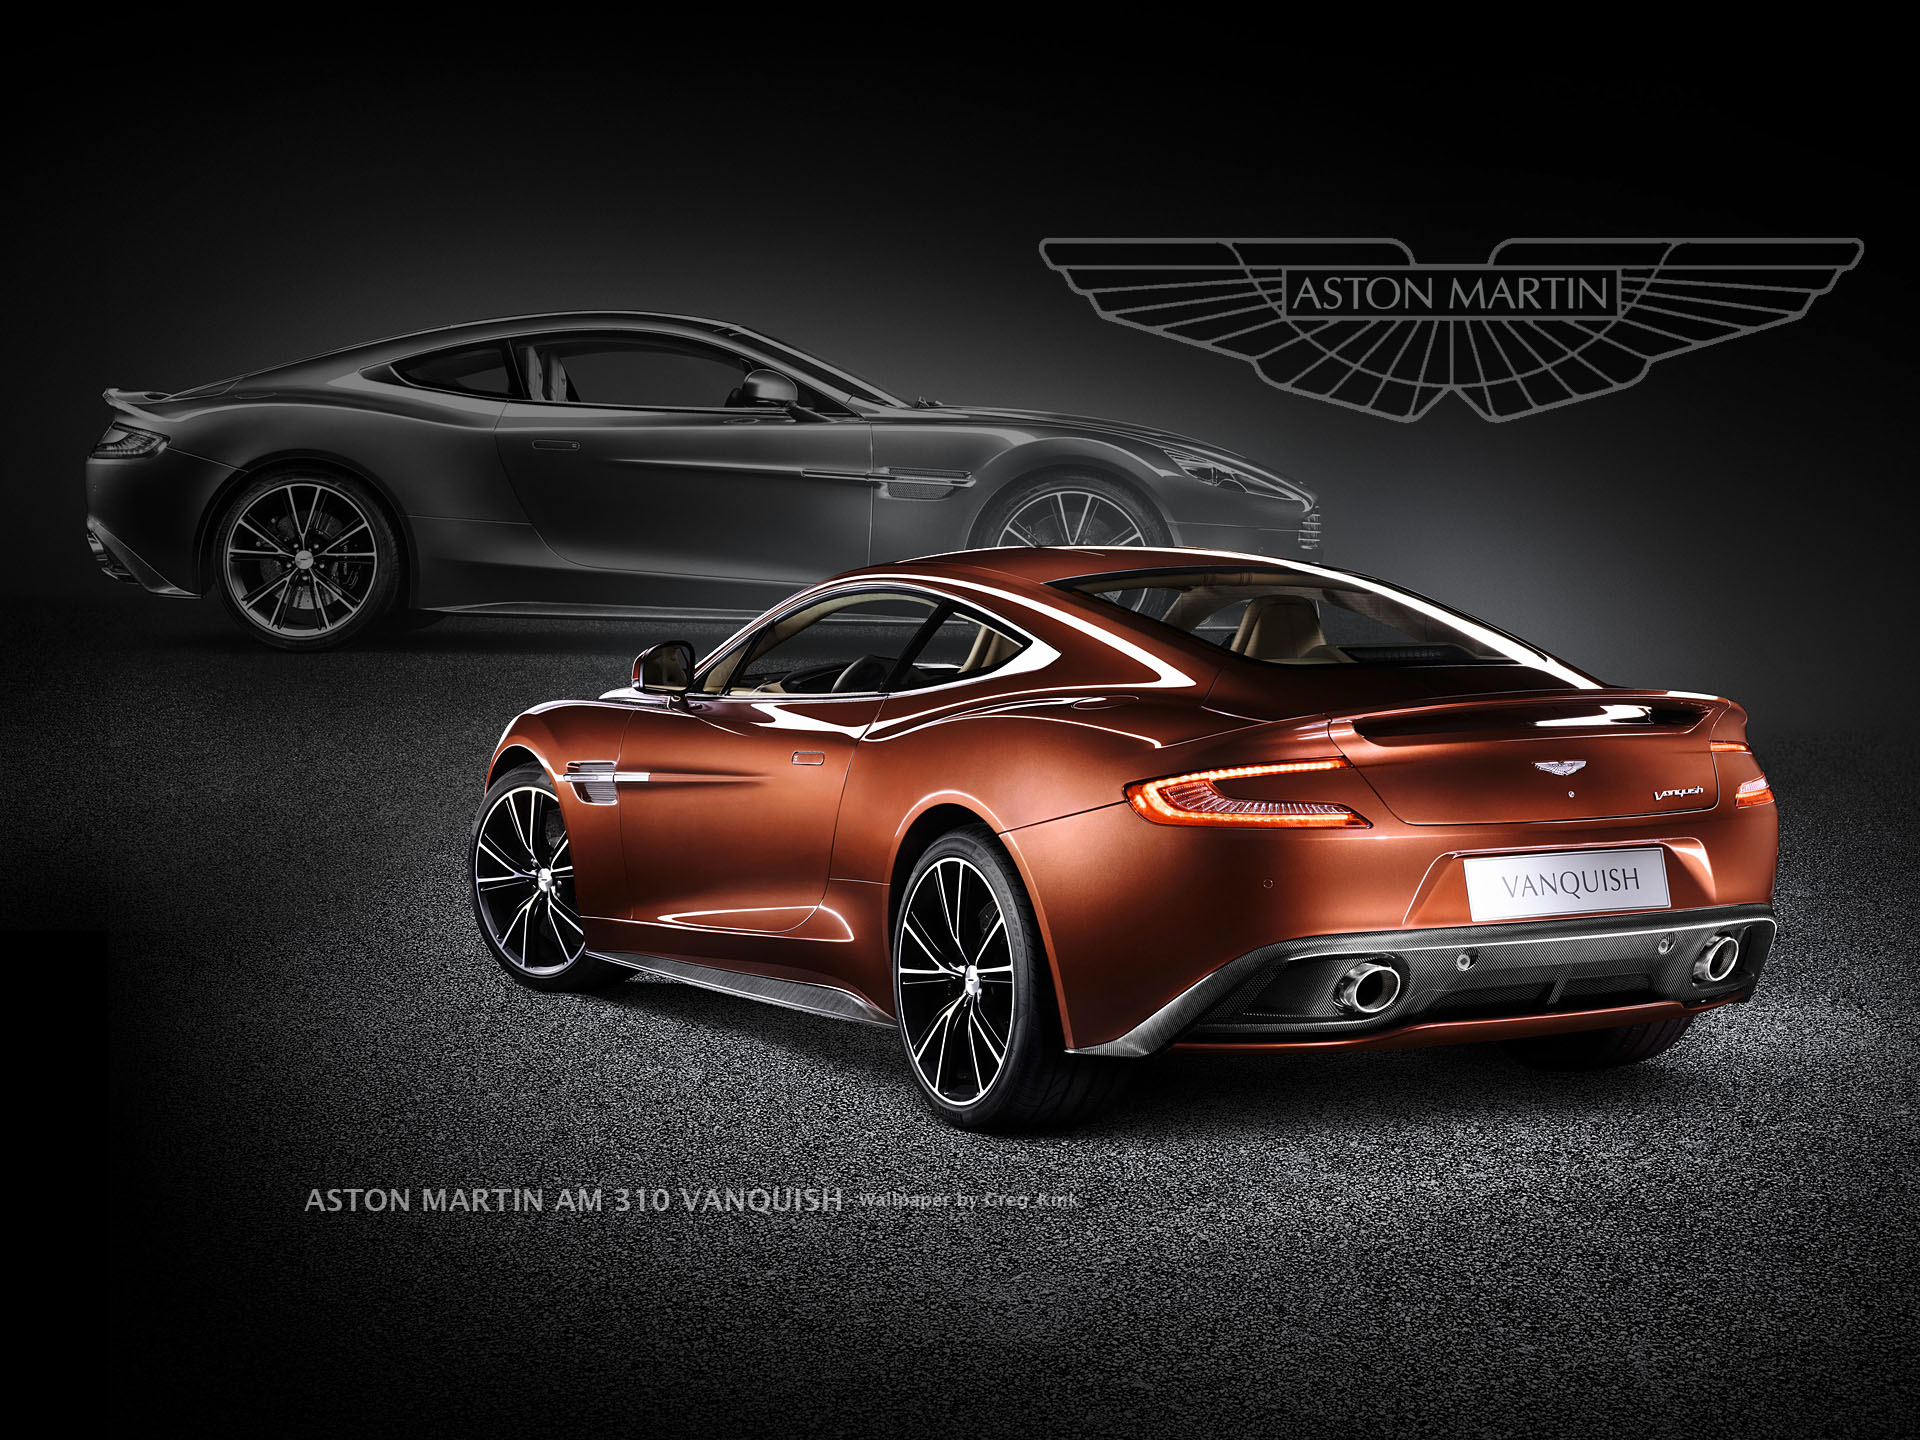 Aston Martin 1080p-HD Wallpapers